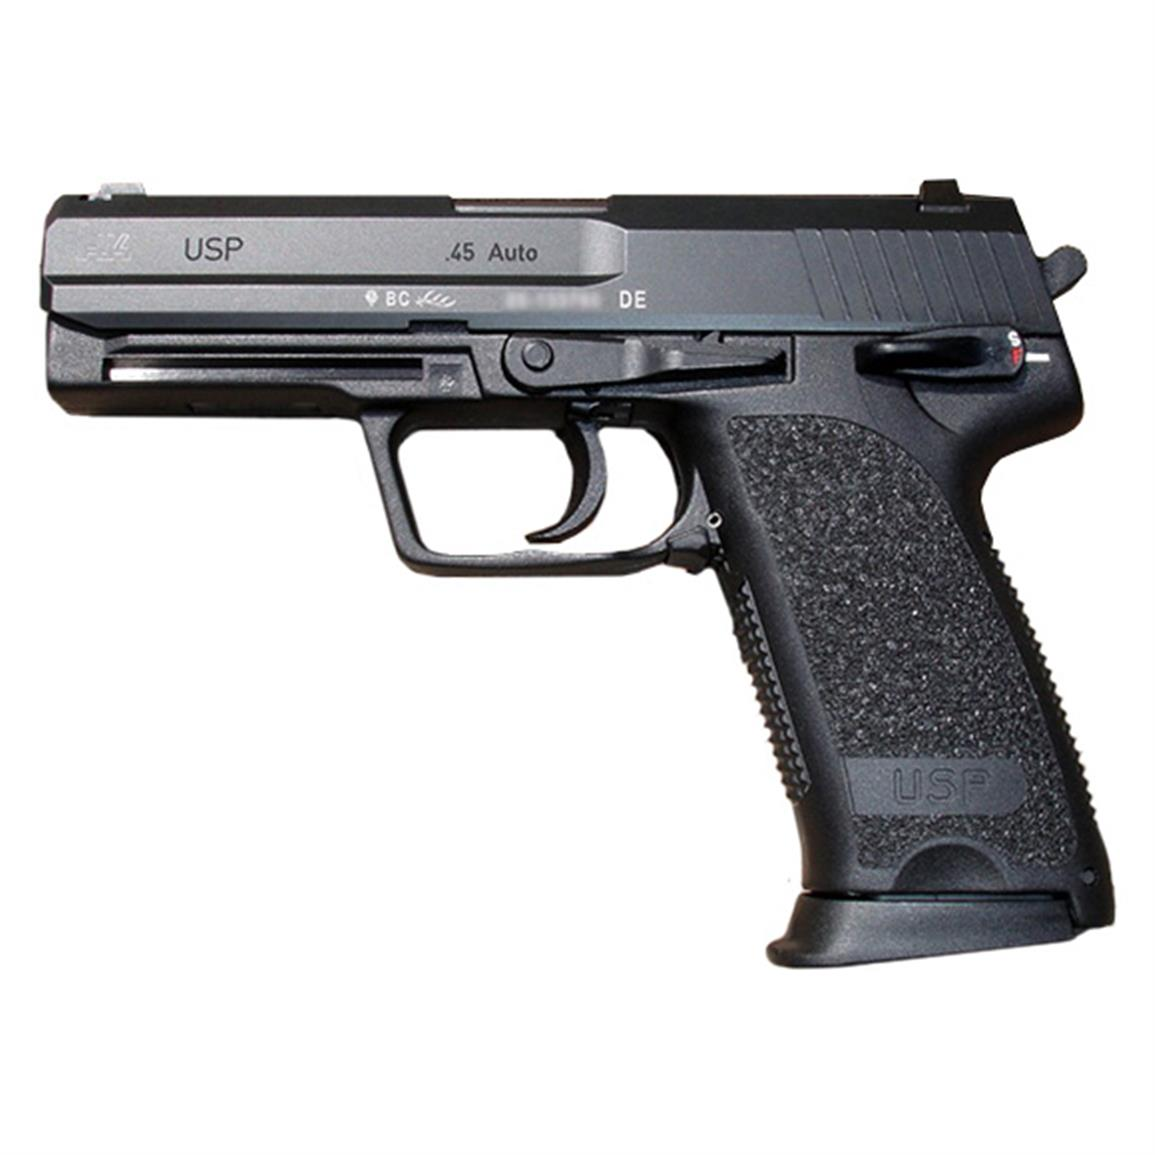 "Heckler & Koch USP 45 V1, Semi-Automatic, .45 ACP, 4.4"" Barrel, 10+1 Rounds, Used Police Trade-In"